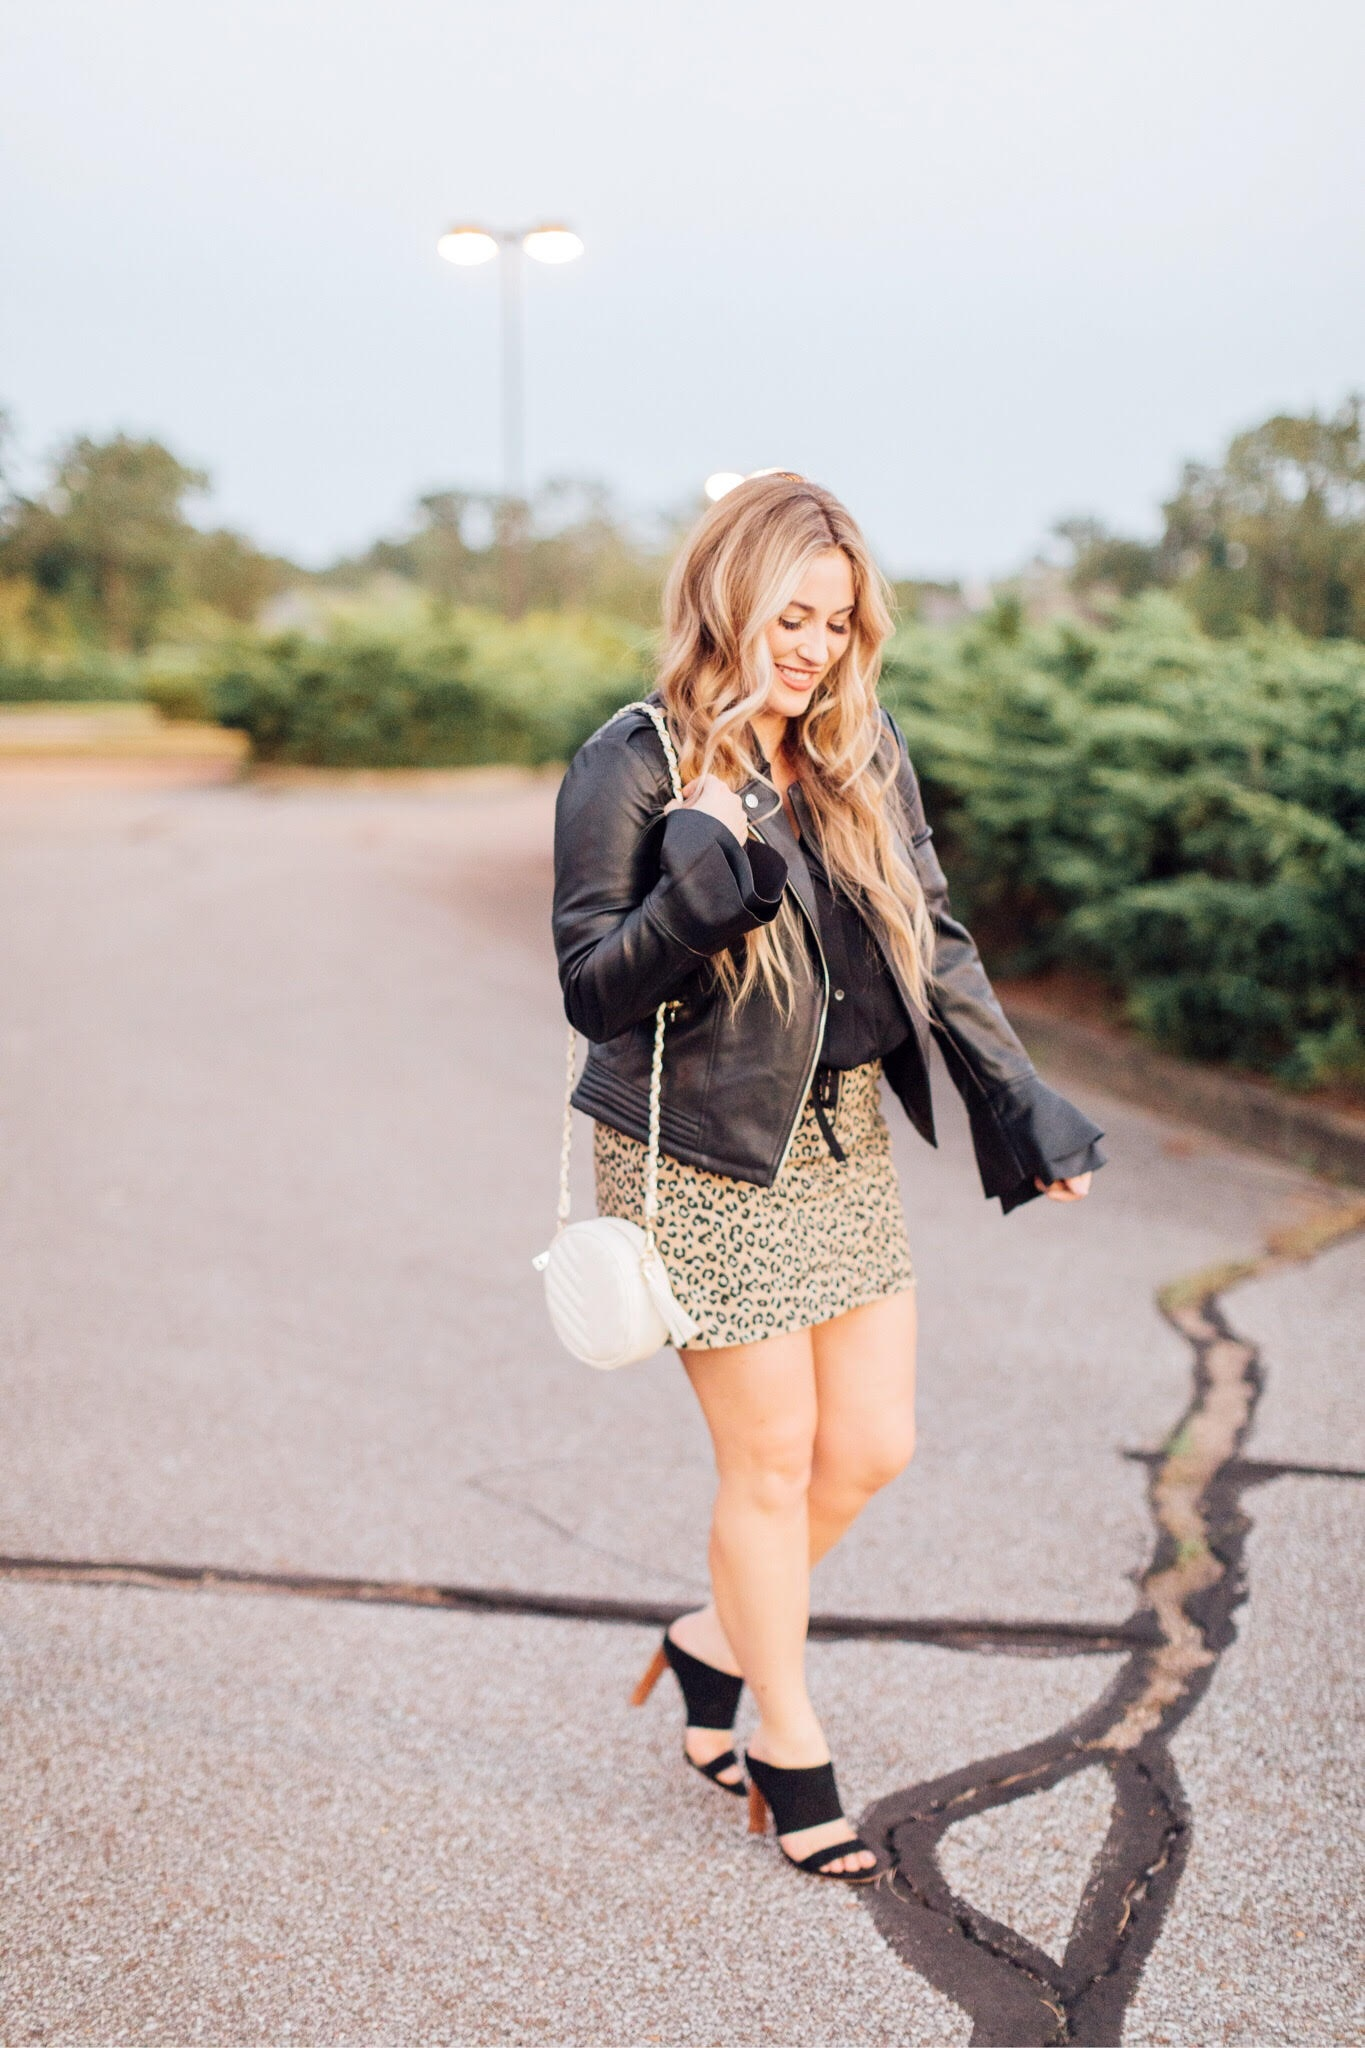 Fall layers with cheetah skirt styled by top fashion blog, Walking in Memphis in High Heels